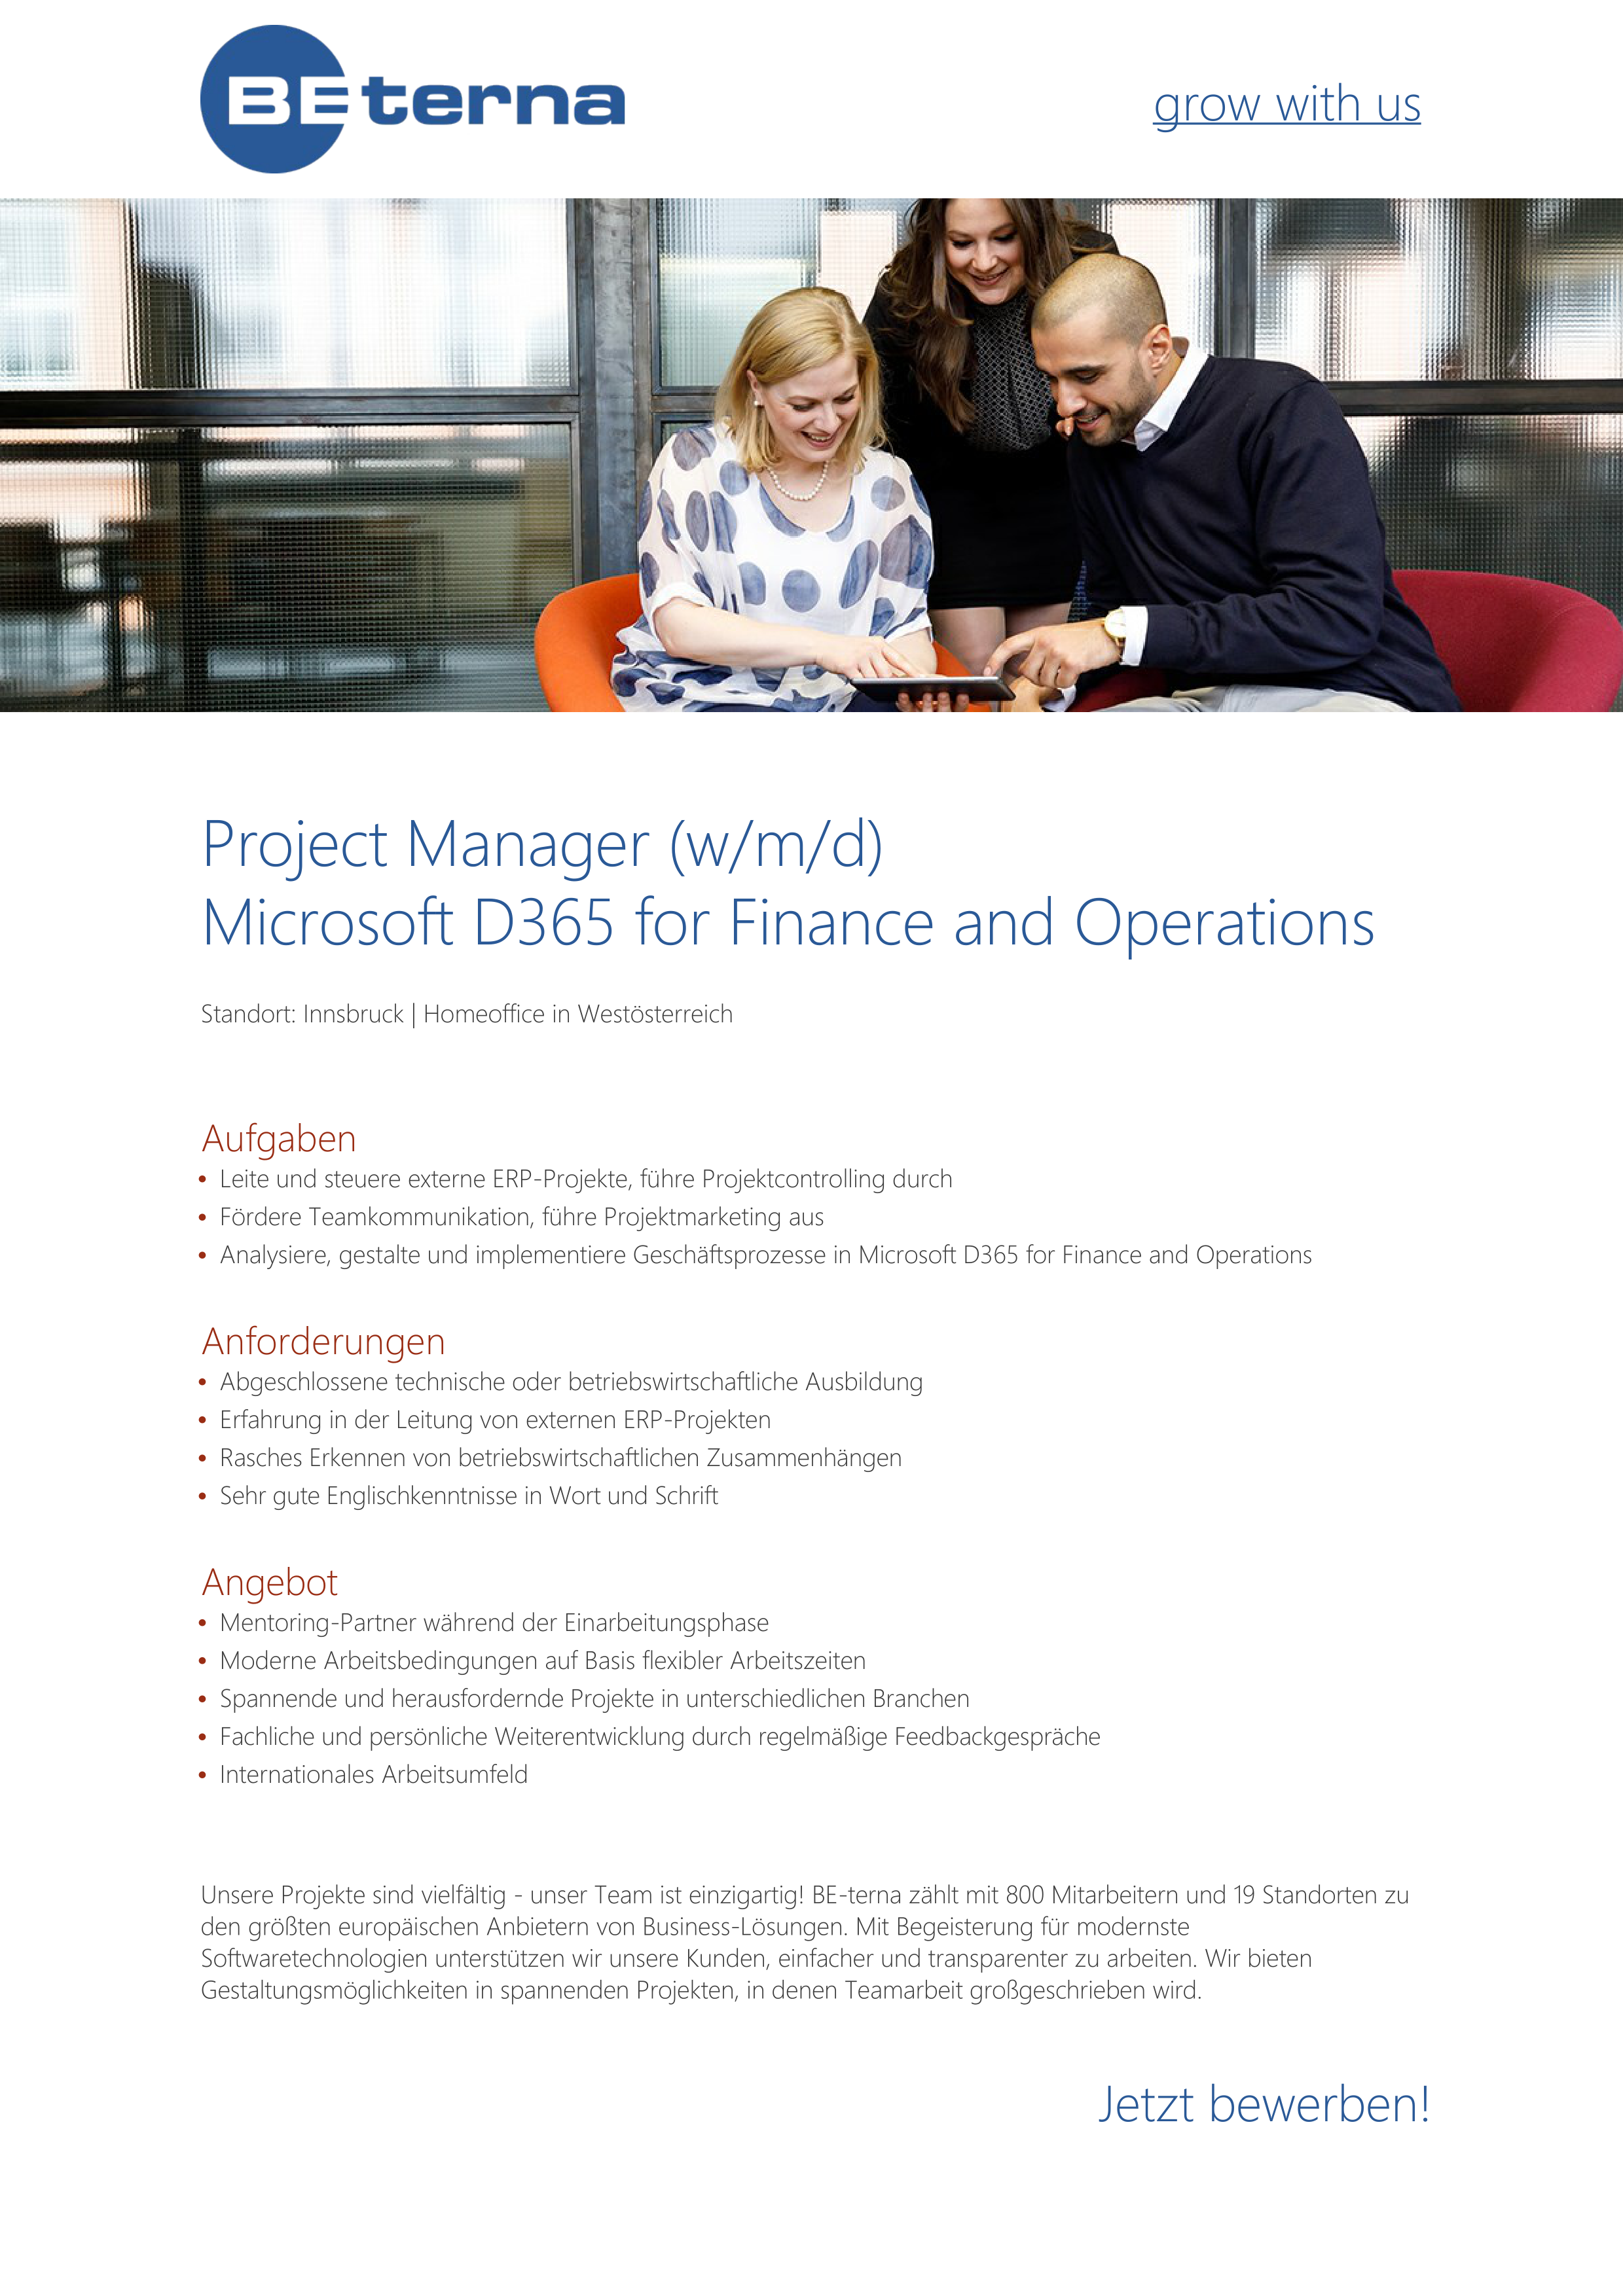 Project Manager (w/m/d) Microsoft D365 for Finance and Operations